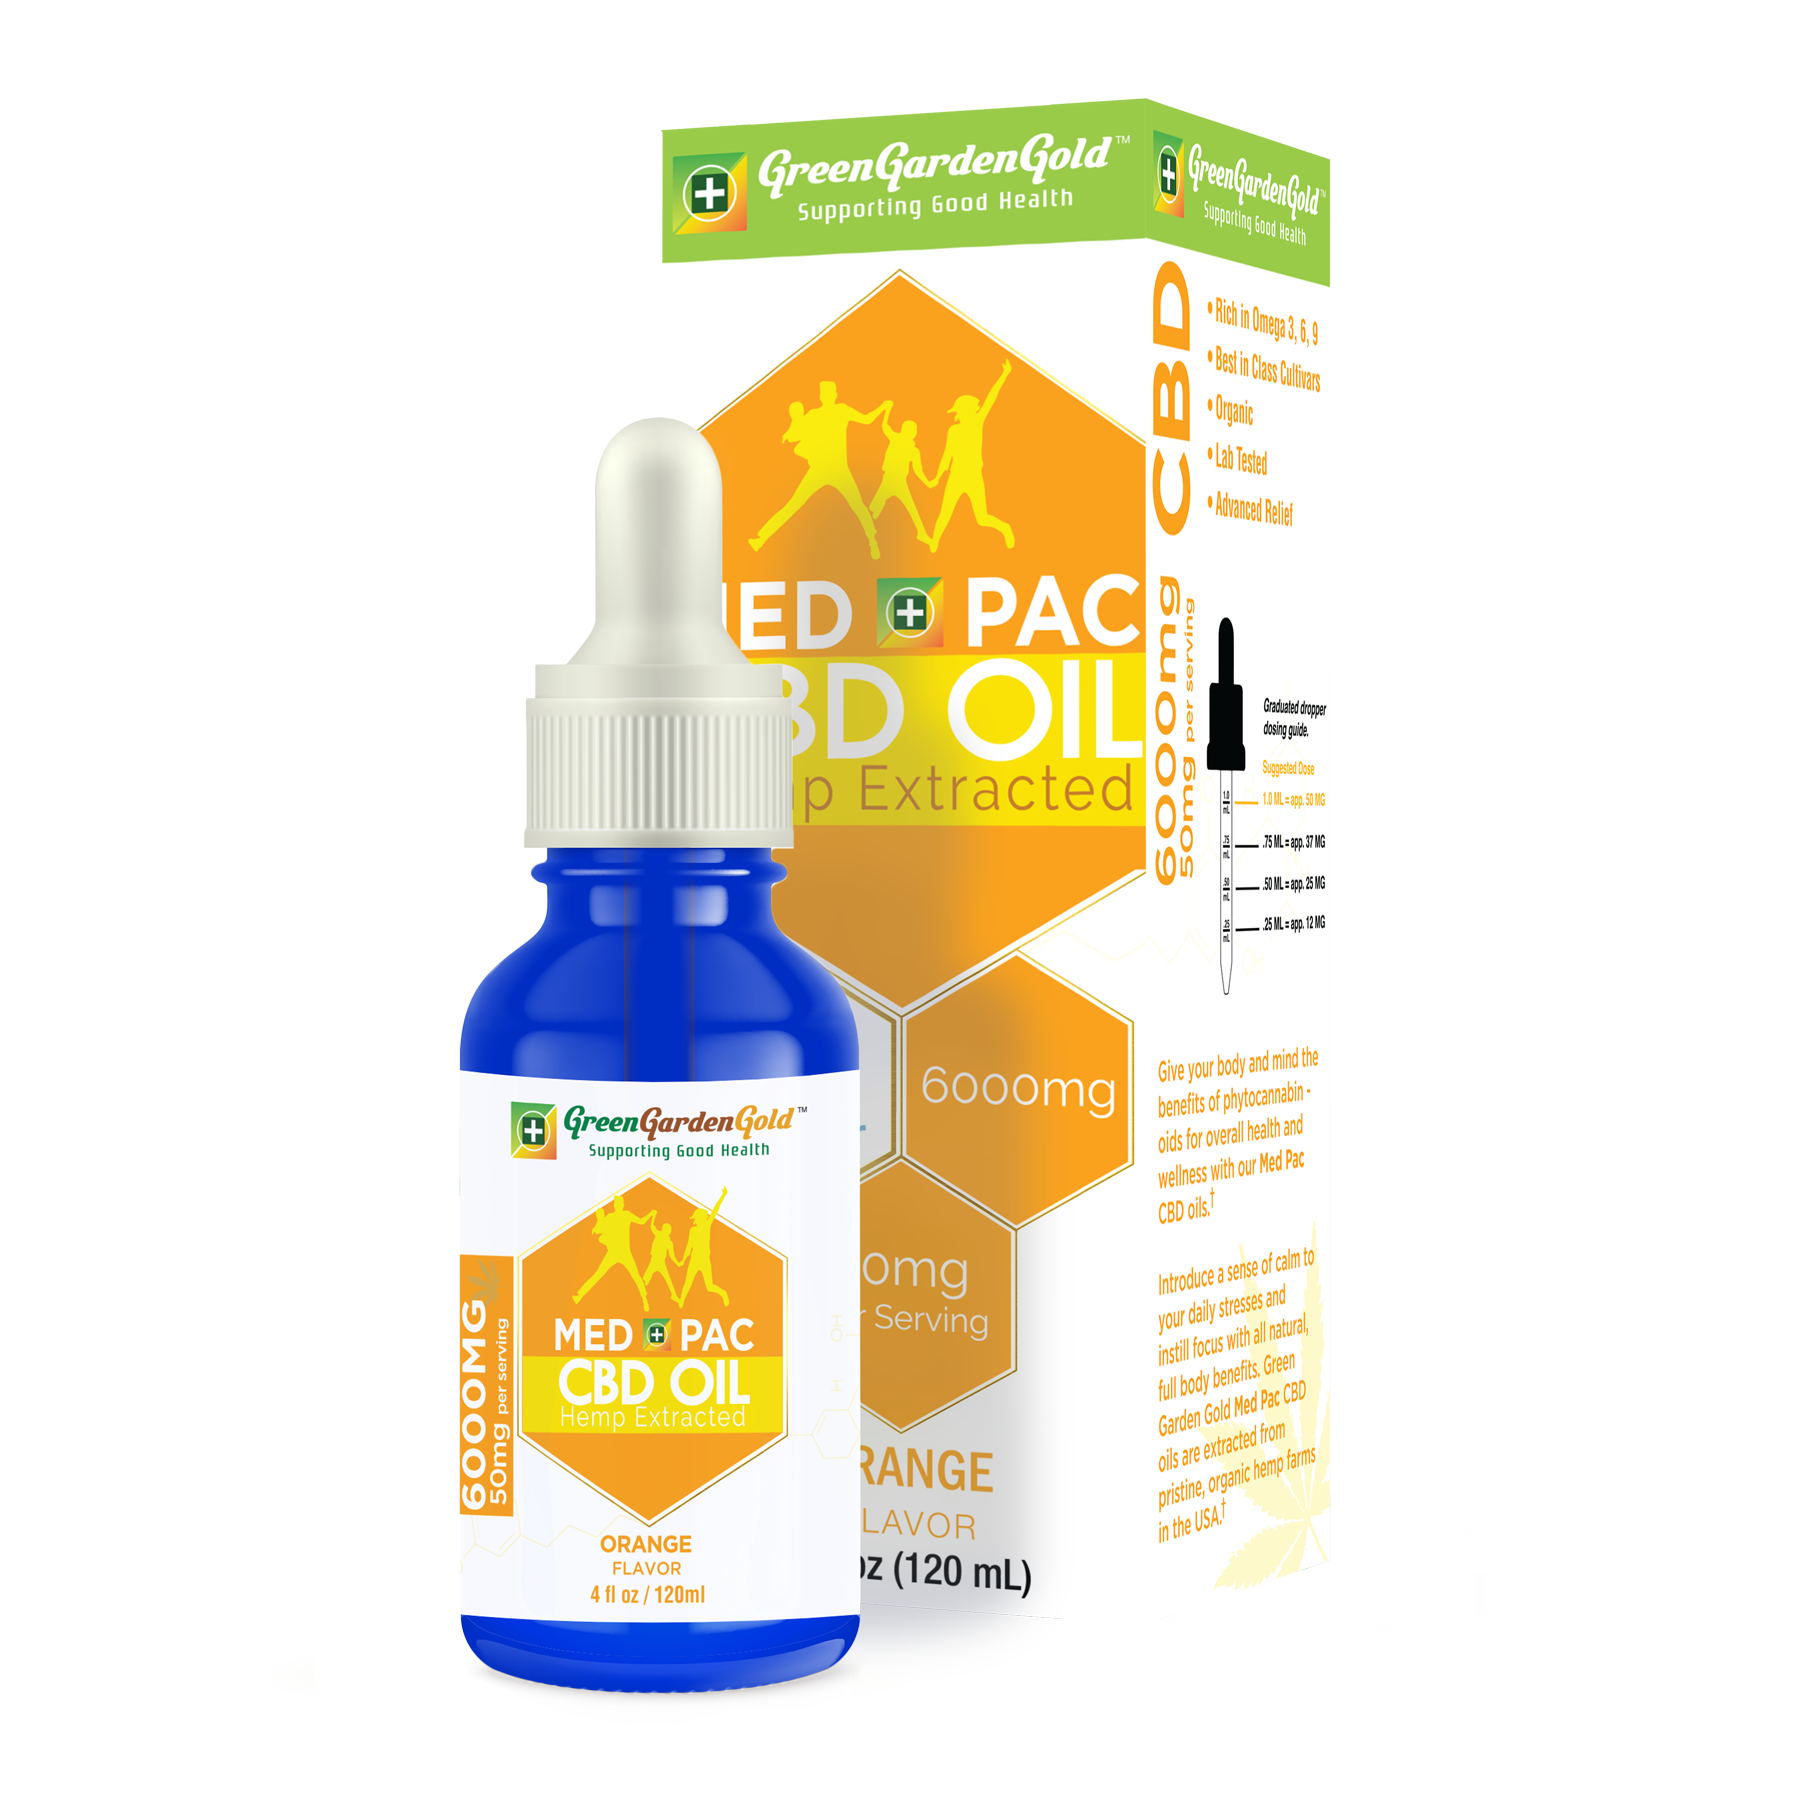 6000mg MED PAC™ CBD Oil